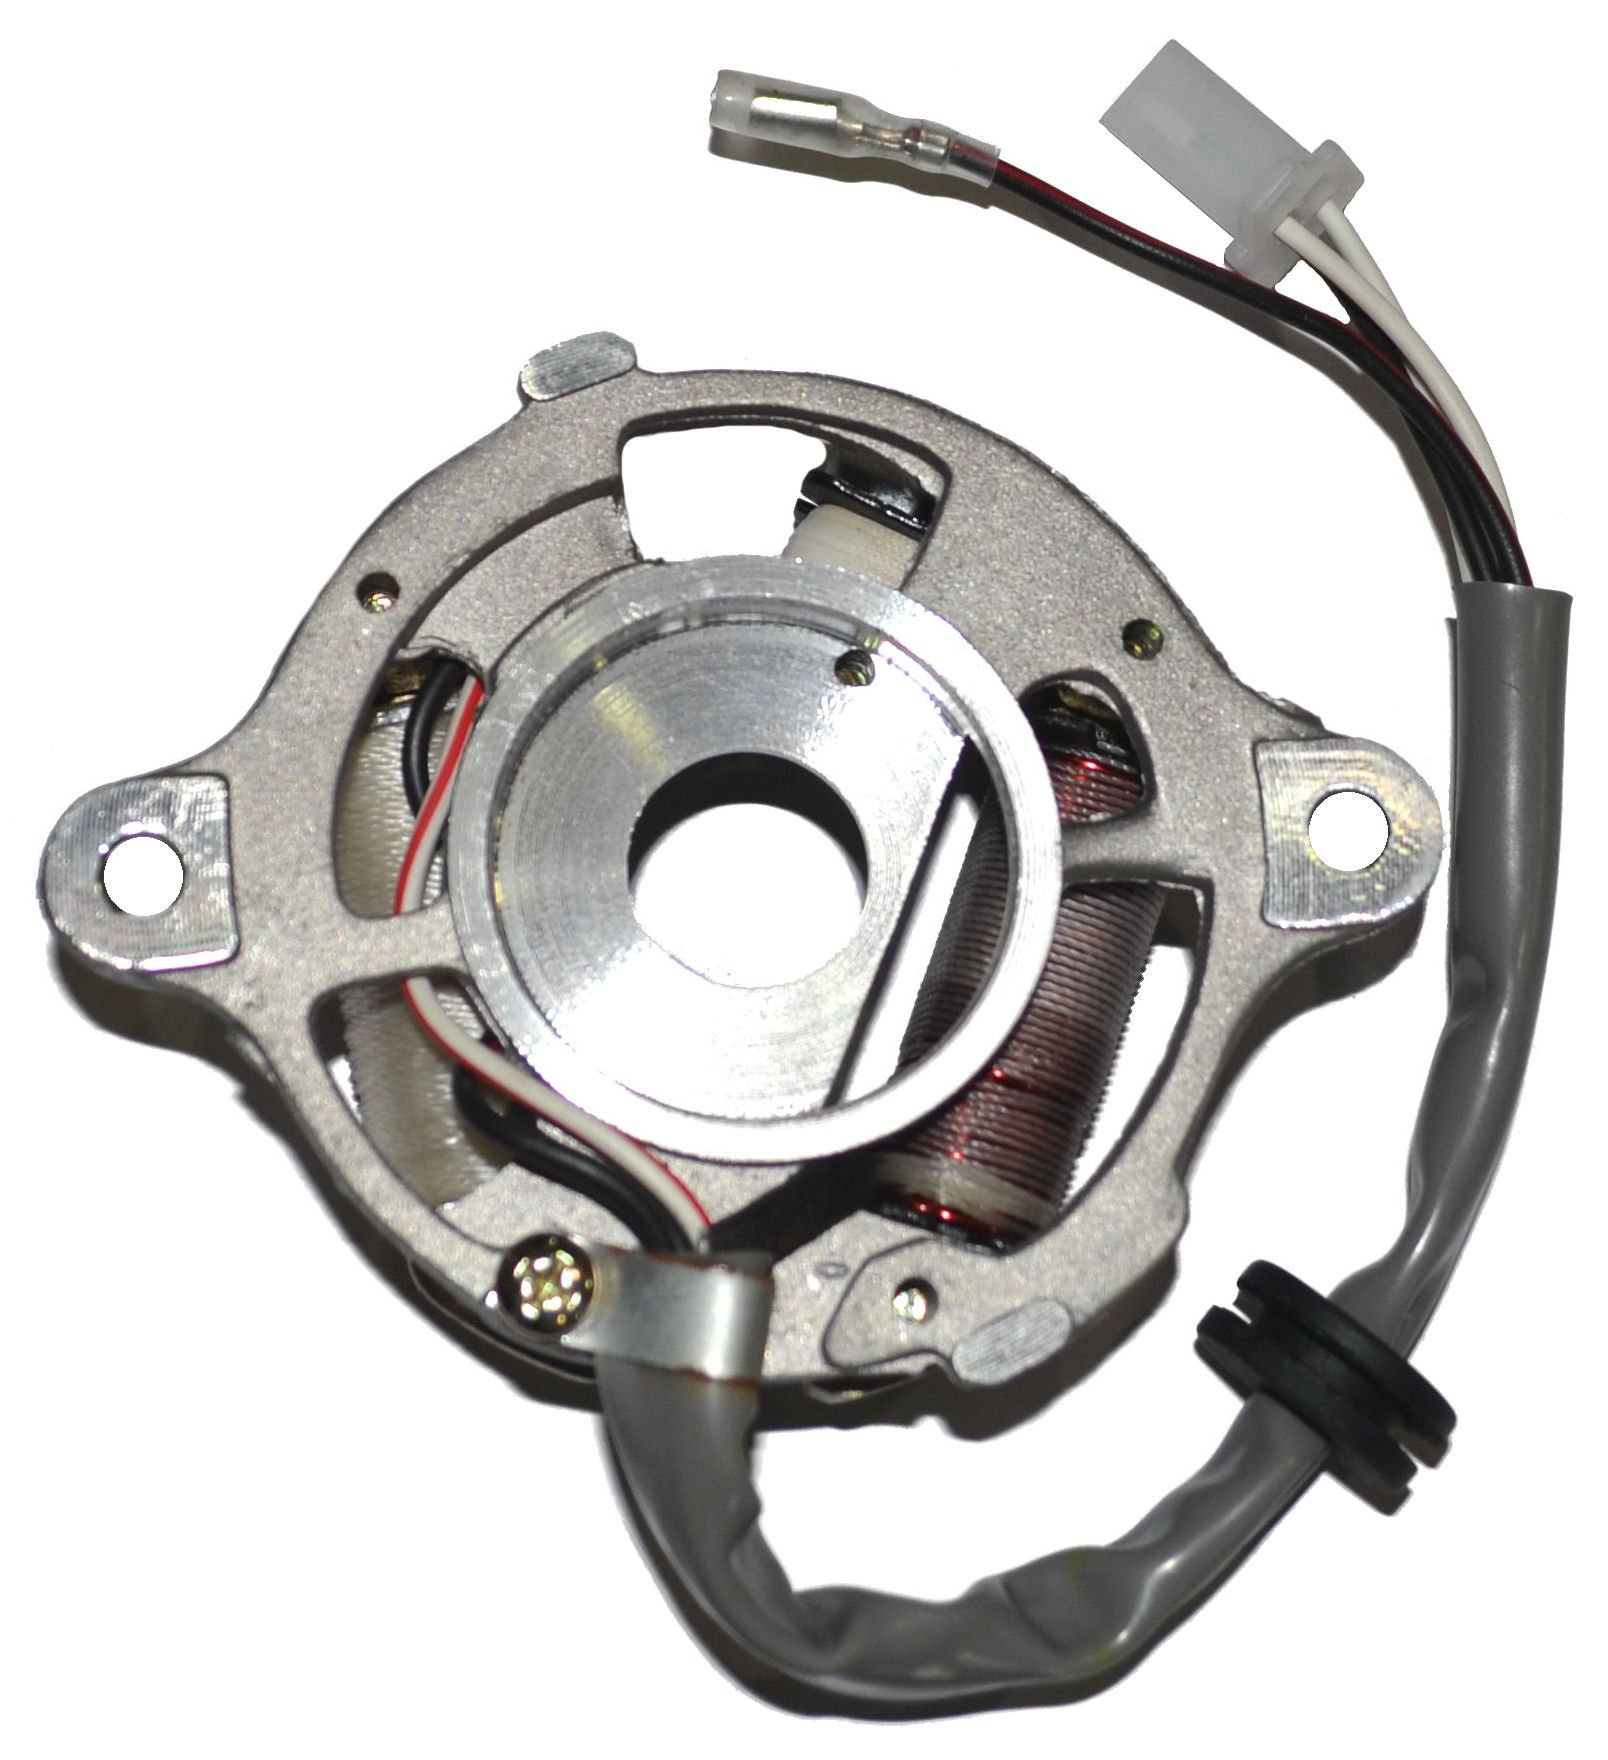 Stator FOR YAMAHA PW 50 MAGNETO GENERATOR ASSEMBLY PW50 Y-ZINGER 1990-2000 NEW